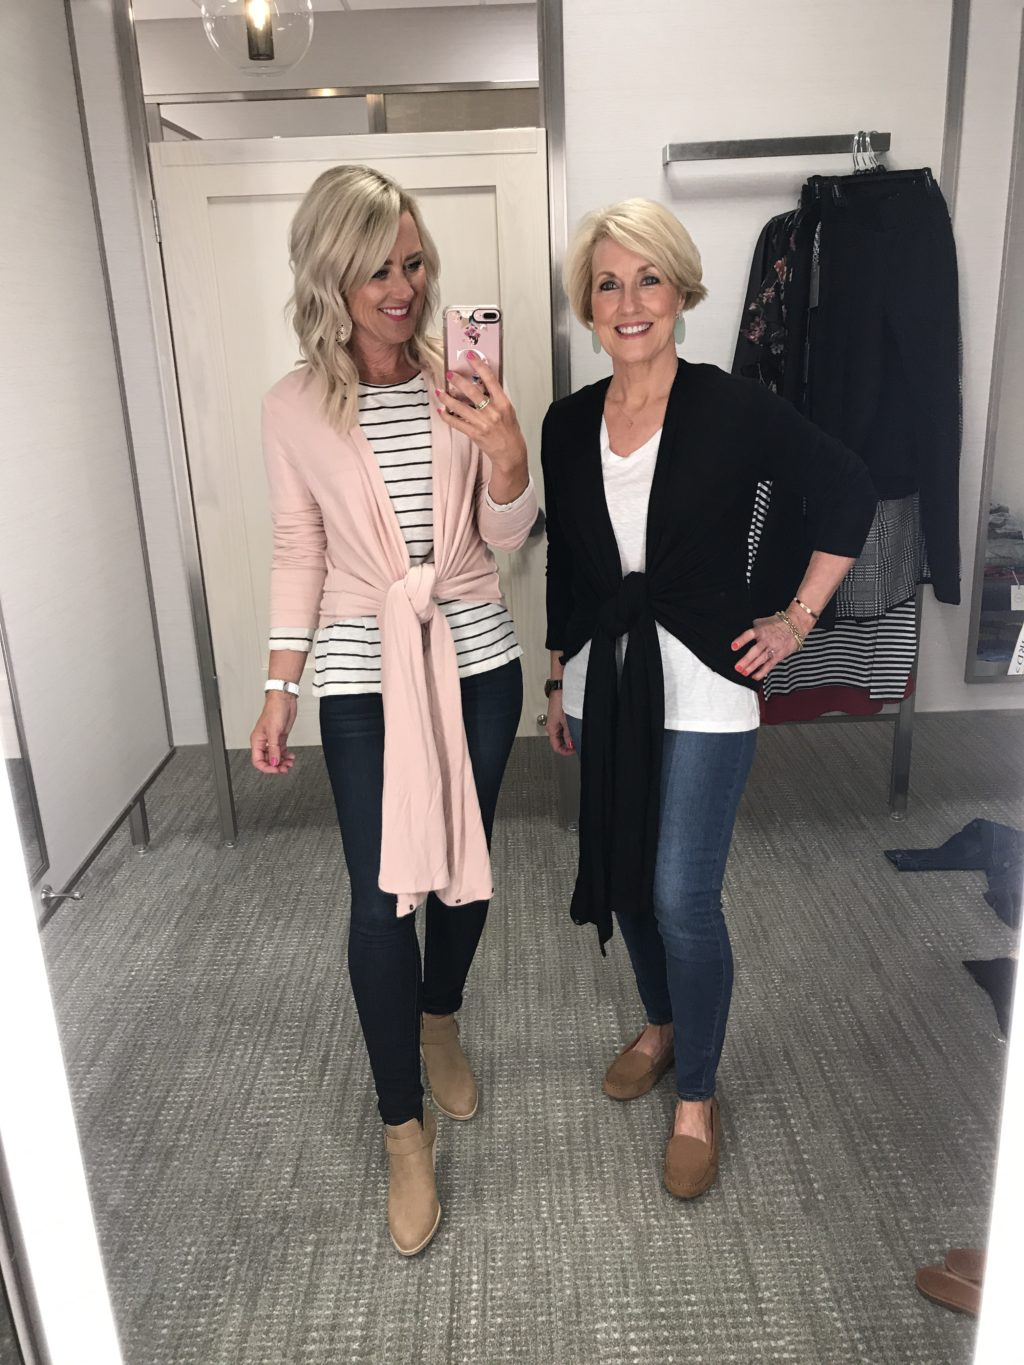 nordstrom anniversary sale gibson convertible cozy fleece wrap cardigan pink and black